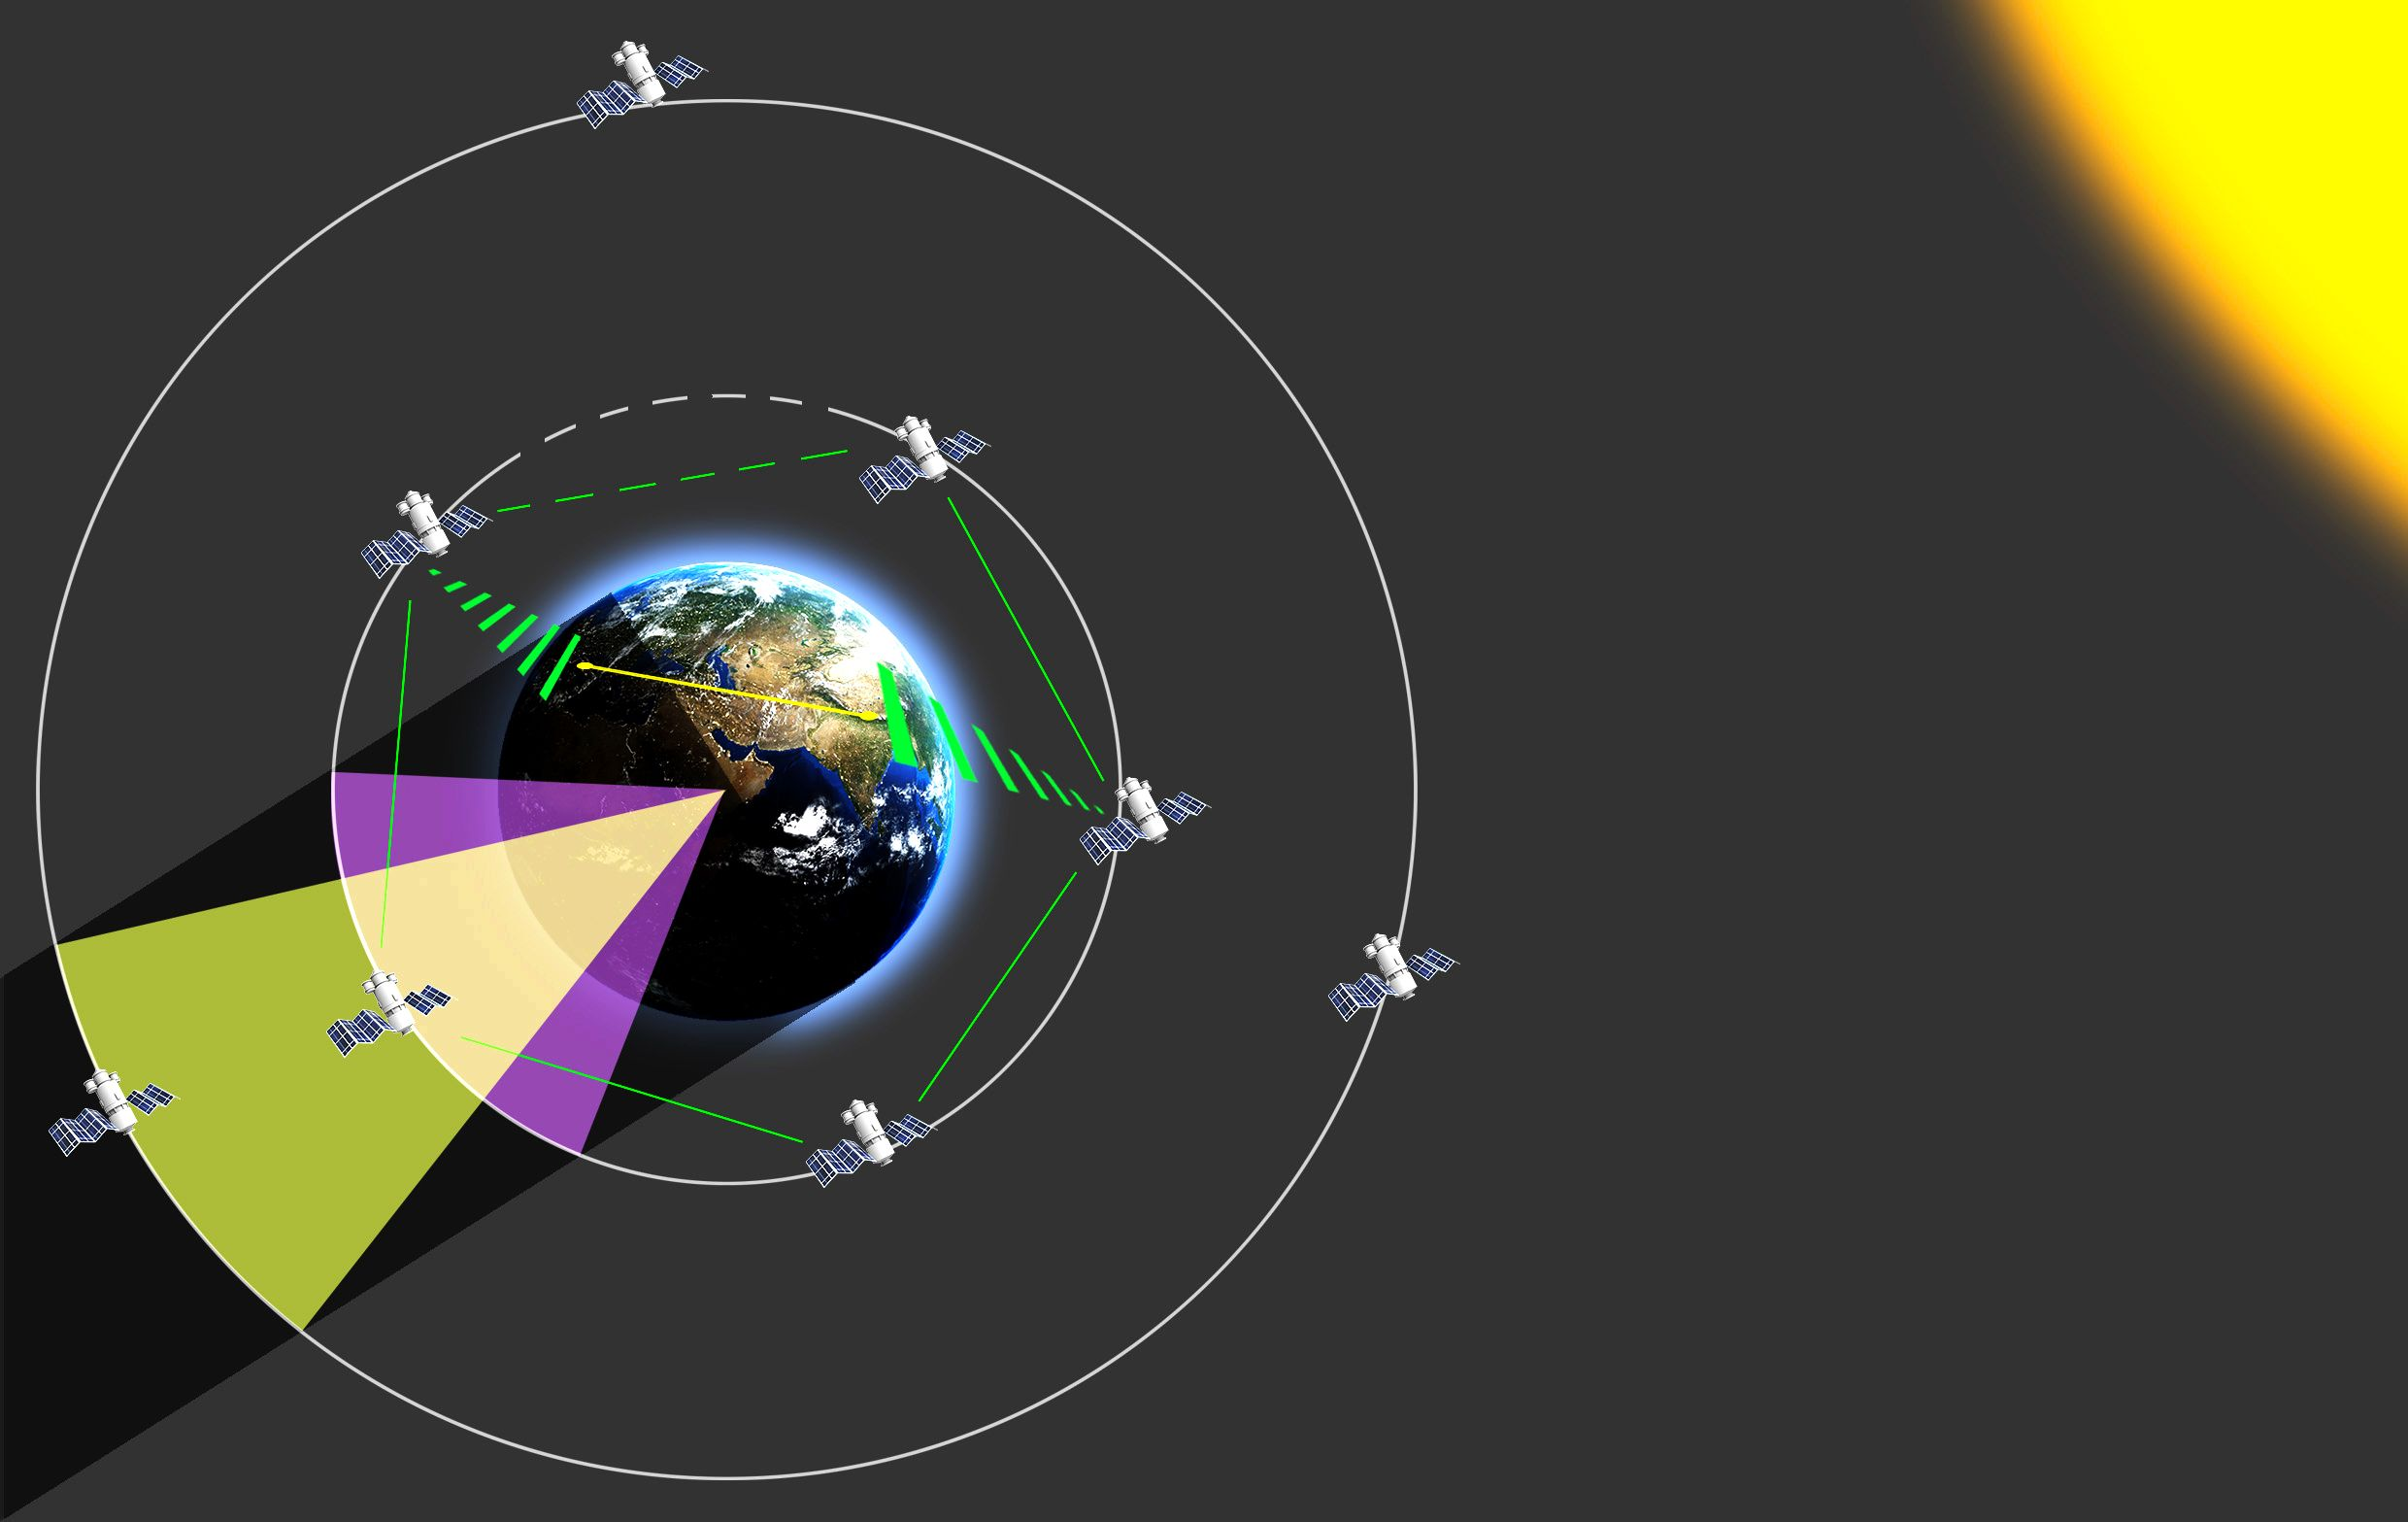 An illustration of satellites orbiting earth and connected to each other by beams and arcs of various colors